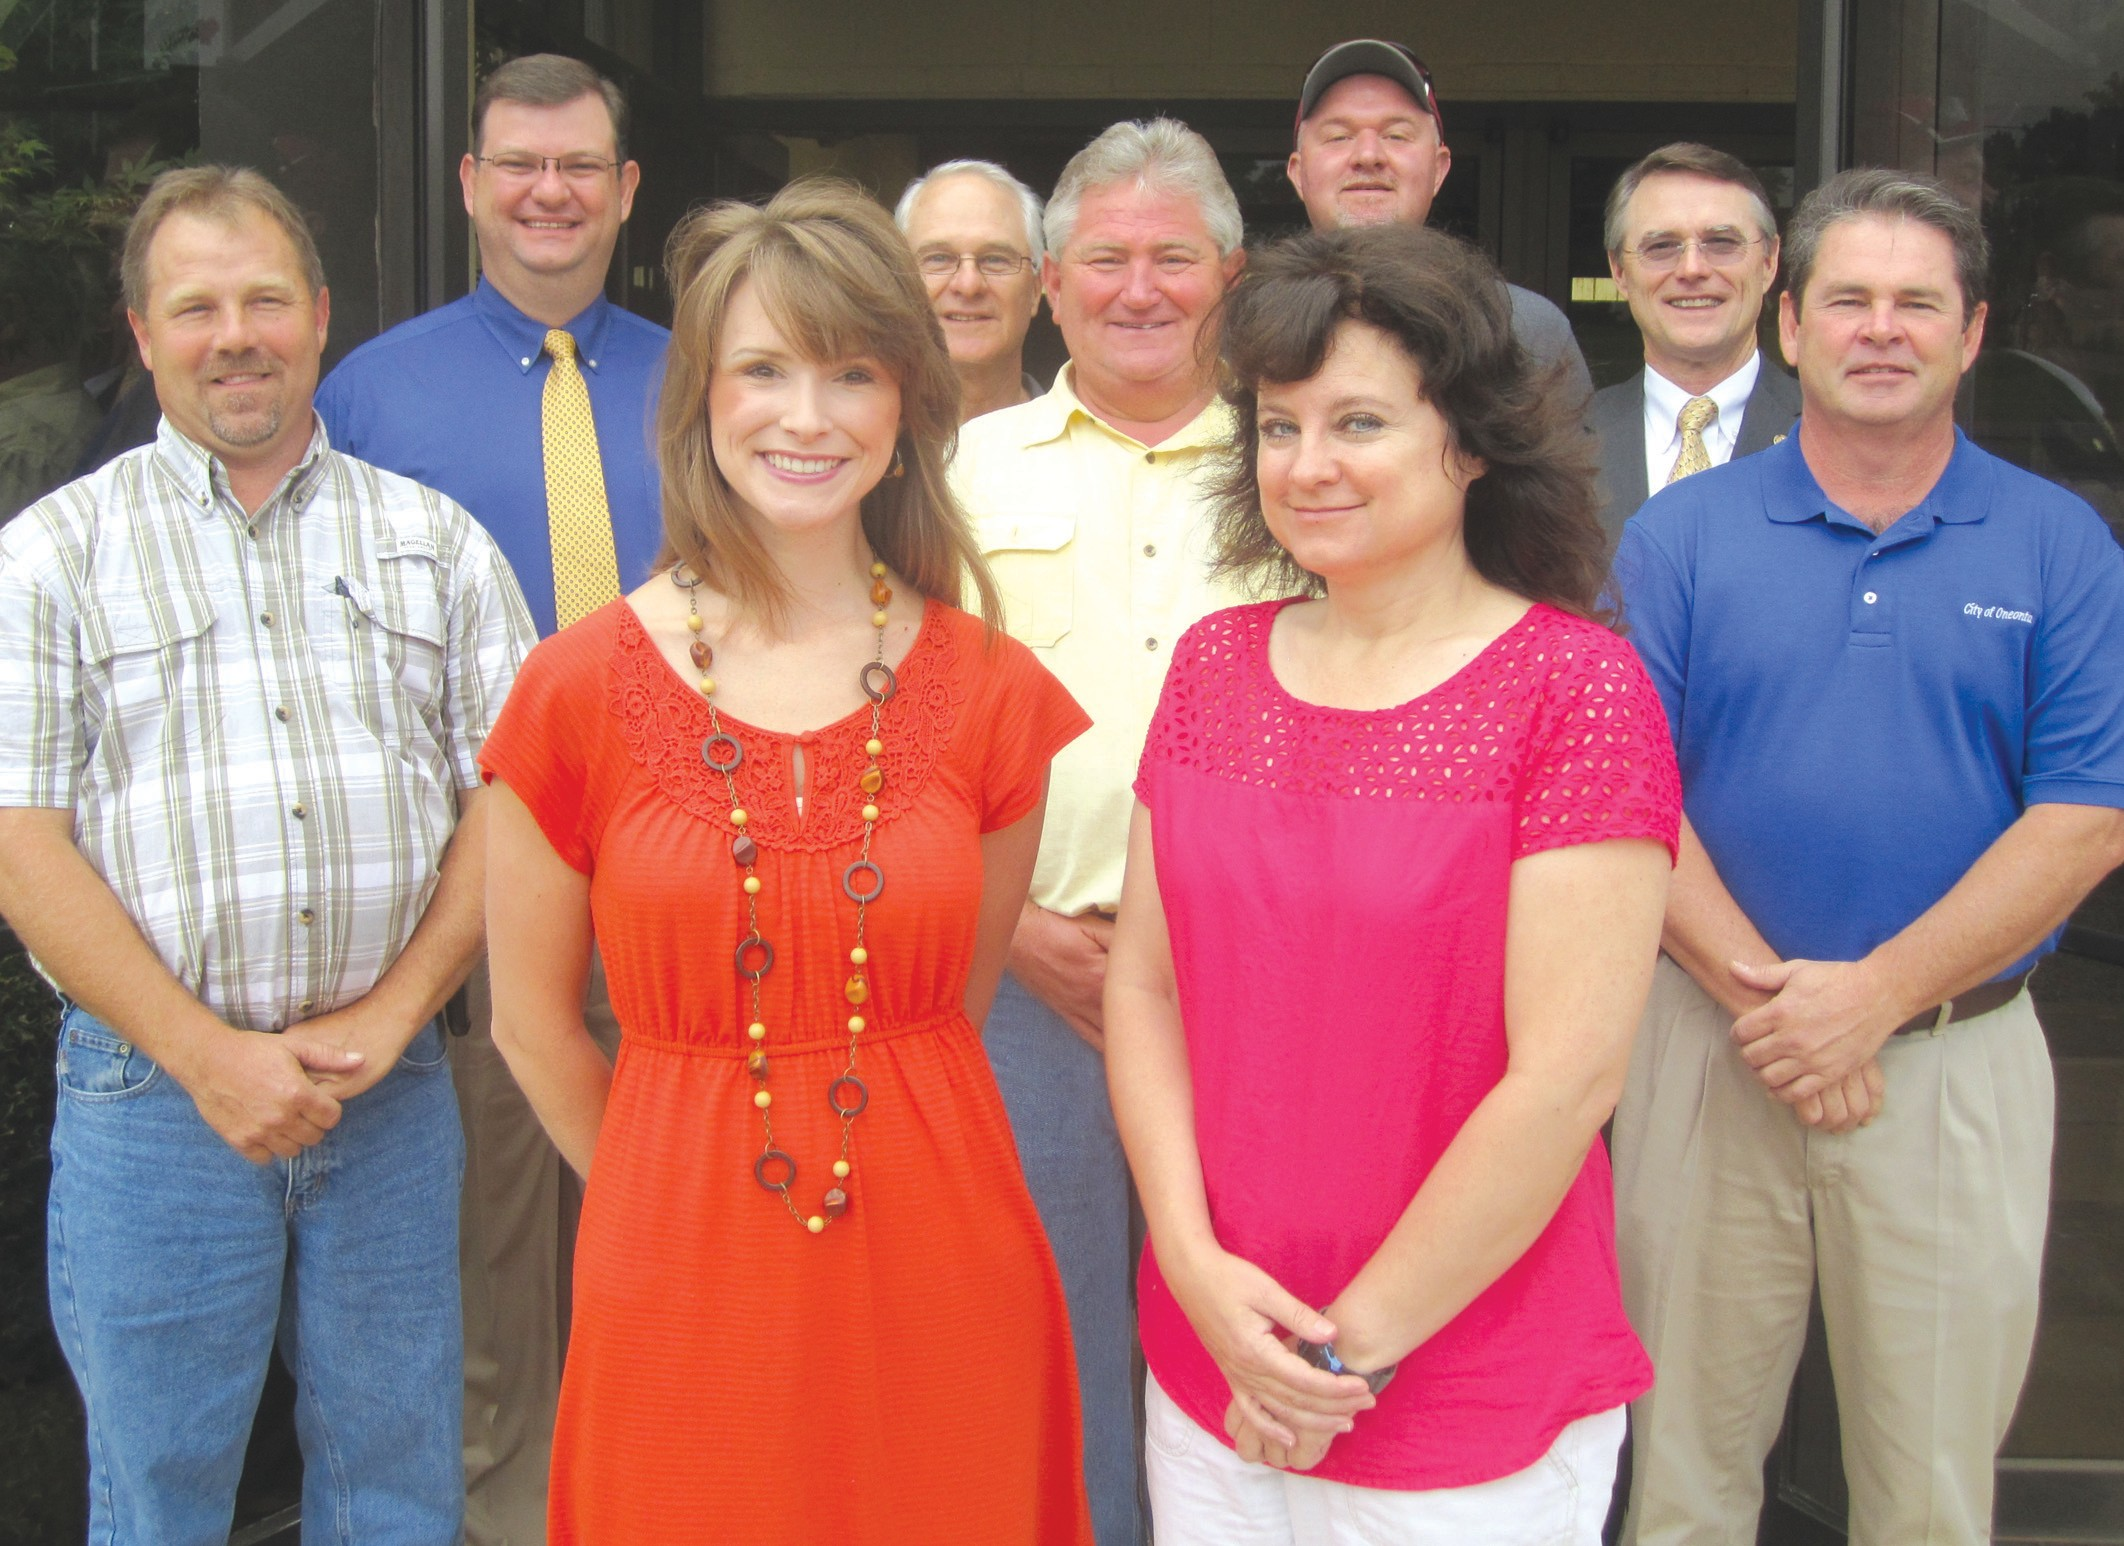 The problem solvers. (front row, from left) county fair coordinators Kelly Doty and Joan Epps; (back row, from left) District 3 Commissioner Dean Calvert, Revenue Commissioner Gregg Armstrong, Oneonta Mayor Ross Norris, Agri-Business Board chairman Jeff Hallmark, Oneonta public works director Rodney Wall, Probate Judge/Commission Chairman Chris Green, and Oneonta city manager Ed Lowe.